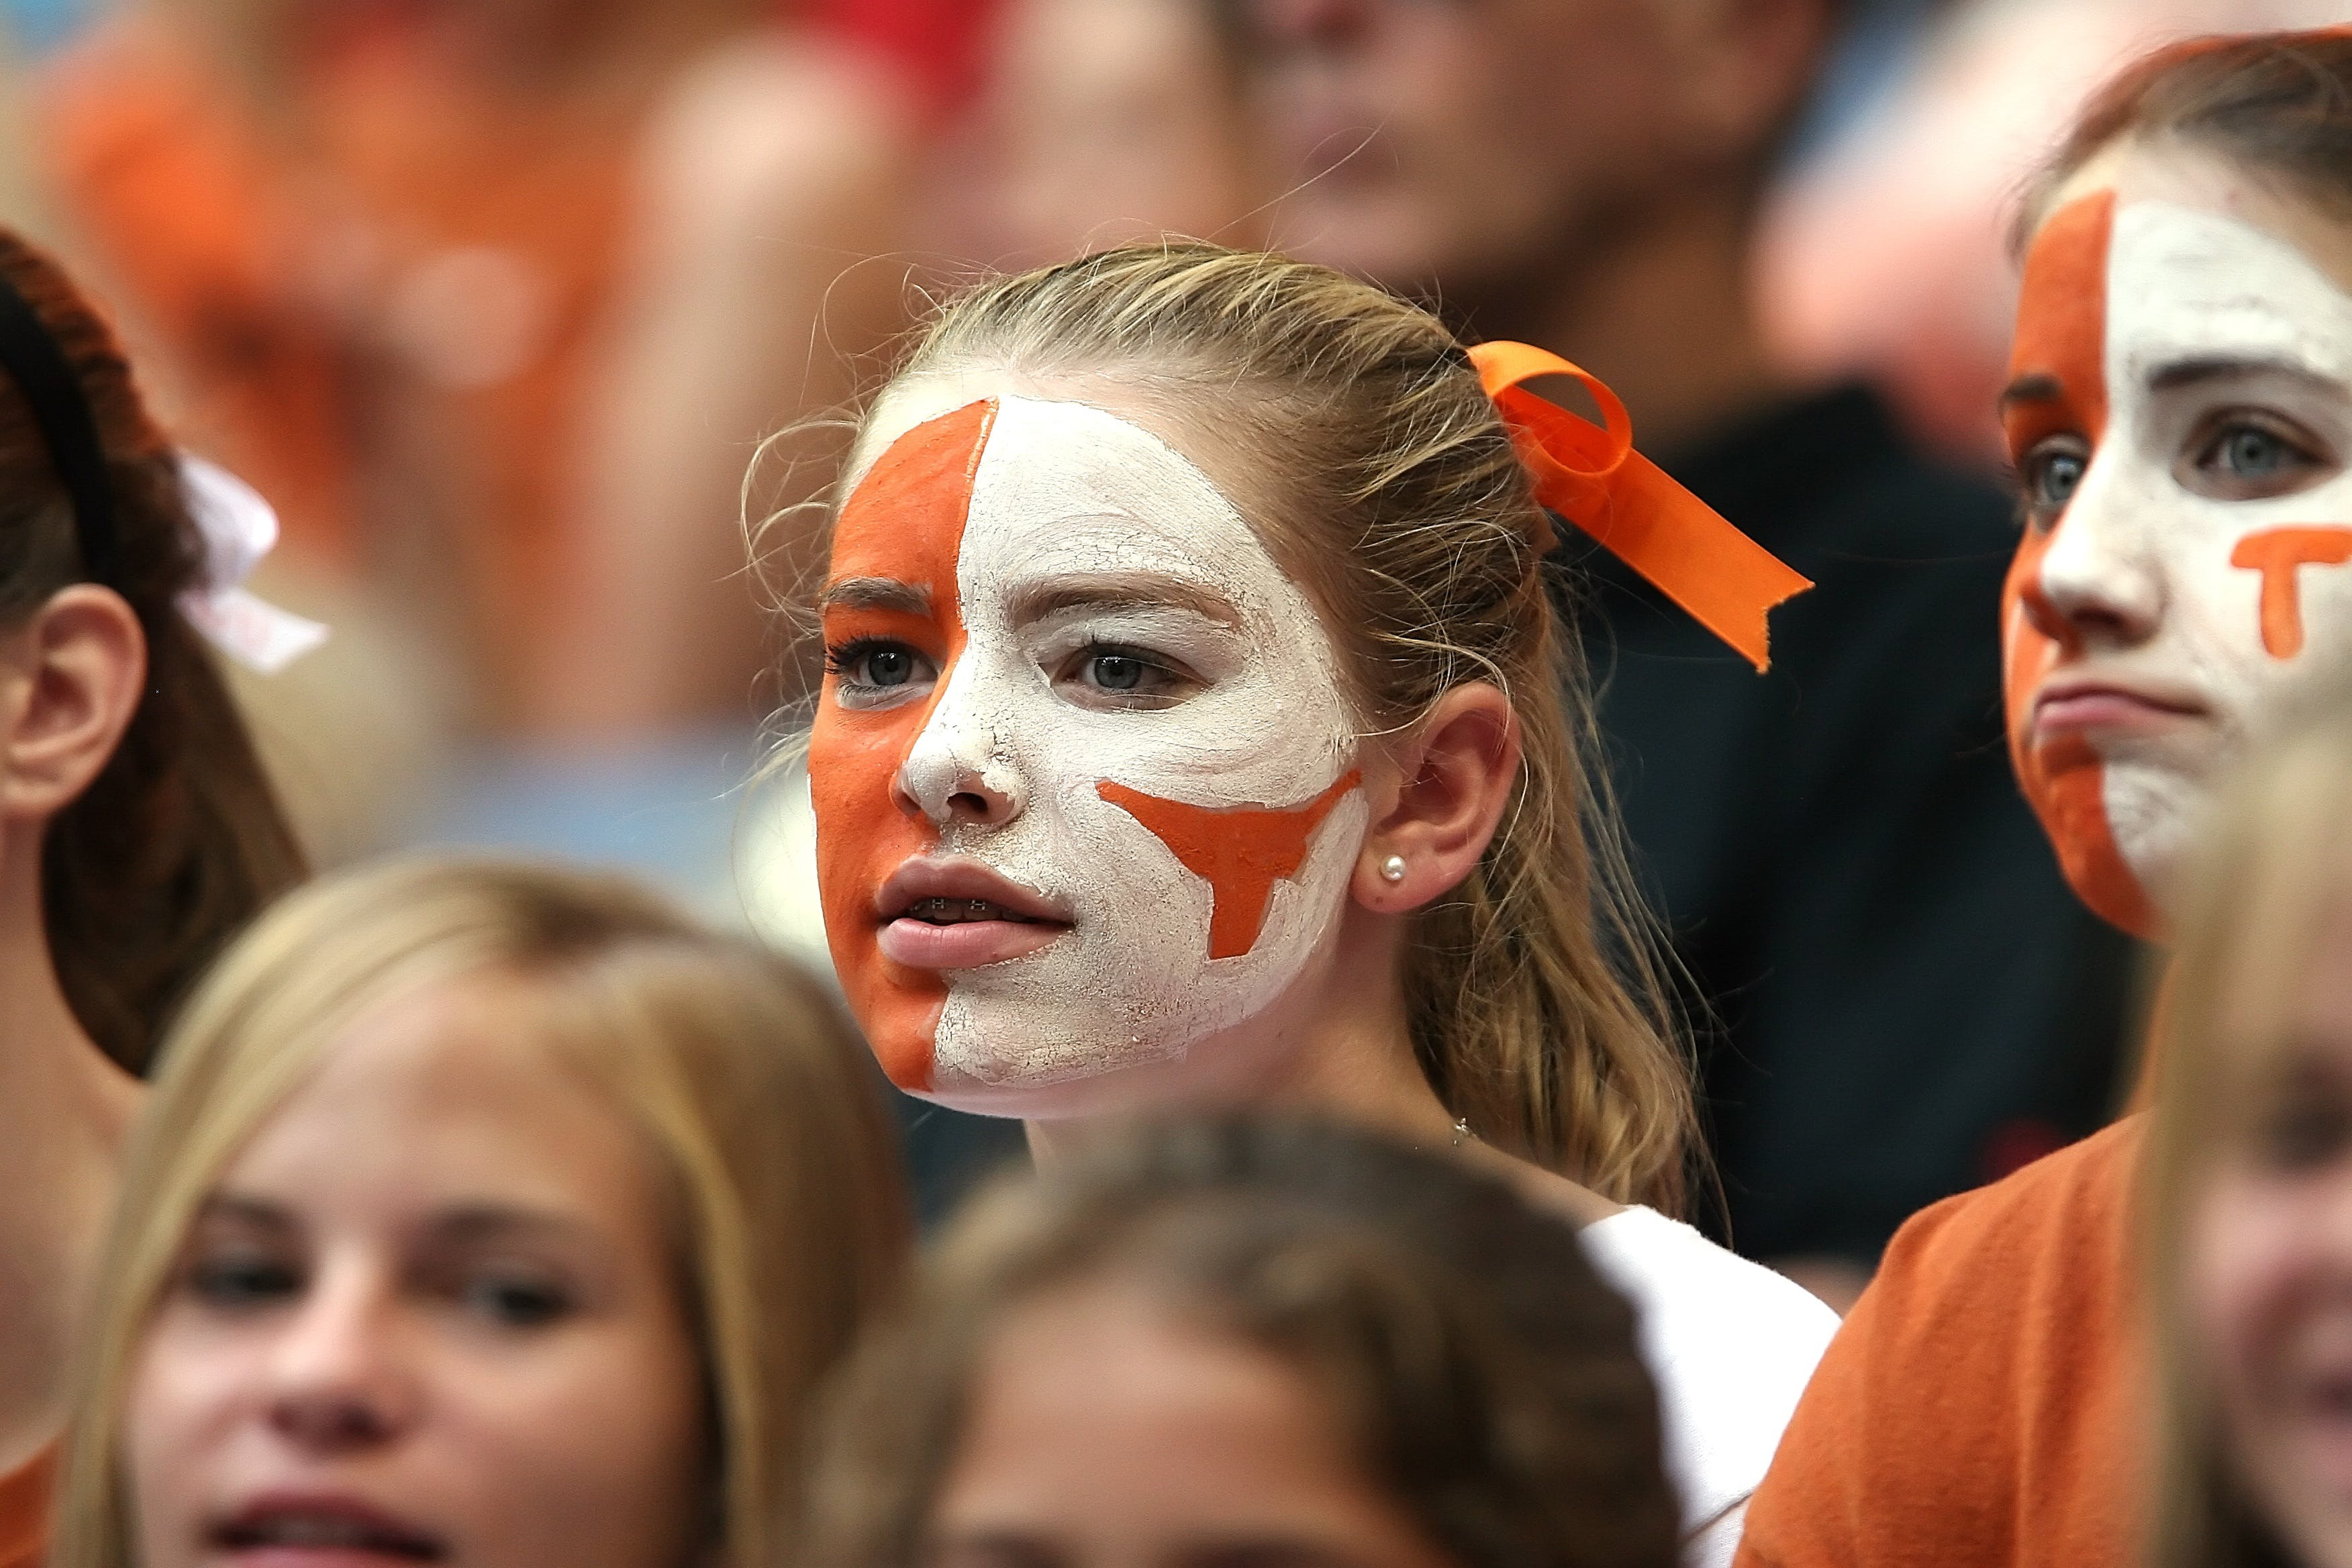 Blond Hair Woman With Orange and White Face Paint